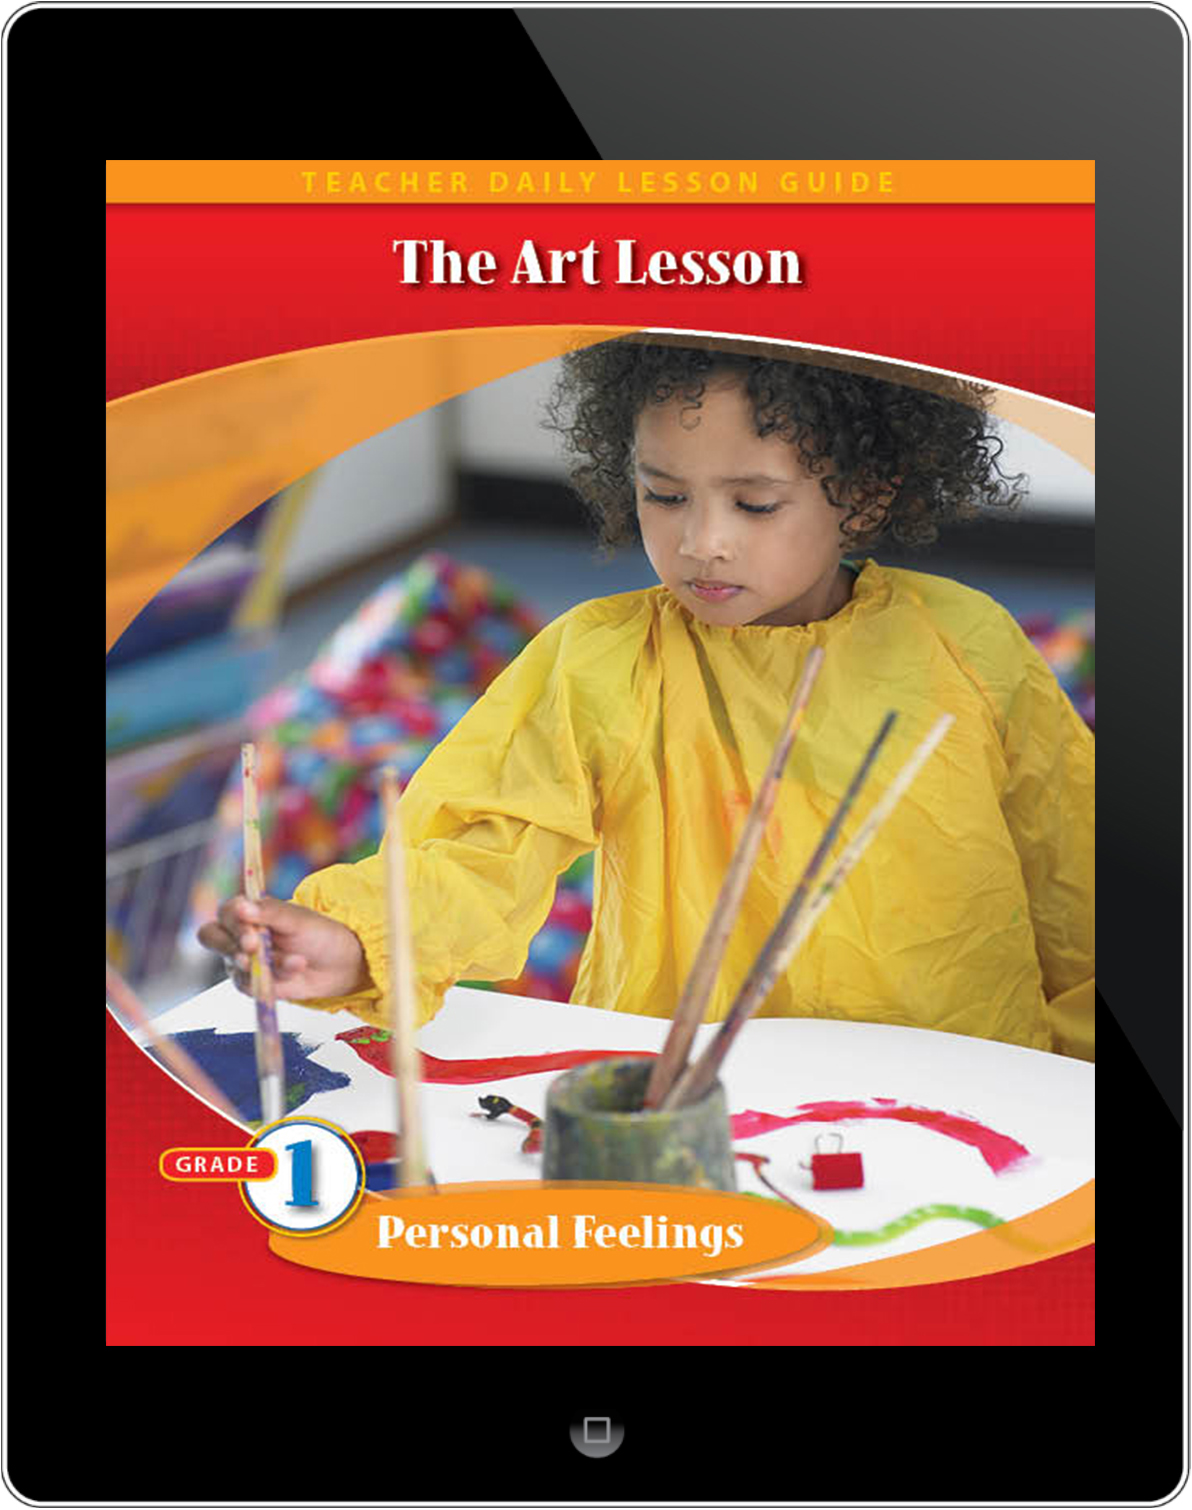 Pathways2.0 Grade 1 Personal Feelings Unit: The Art Lesson Daily Lesson Guide 5 Year License